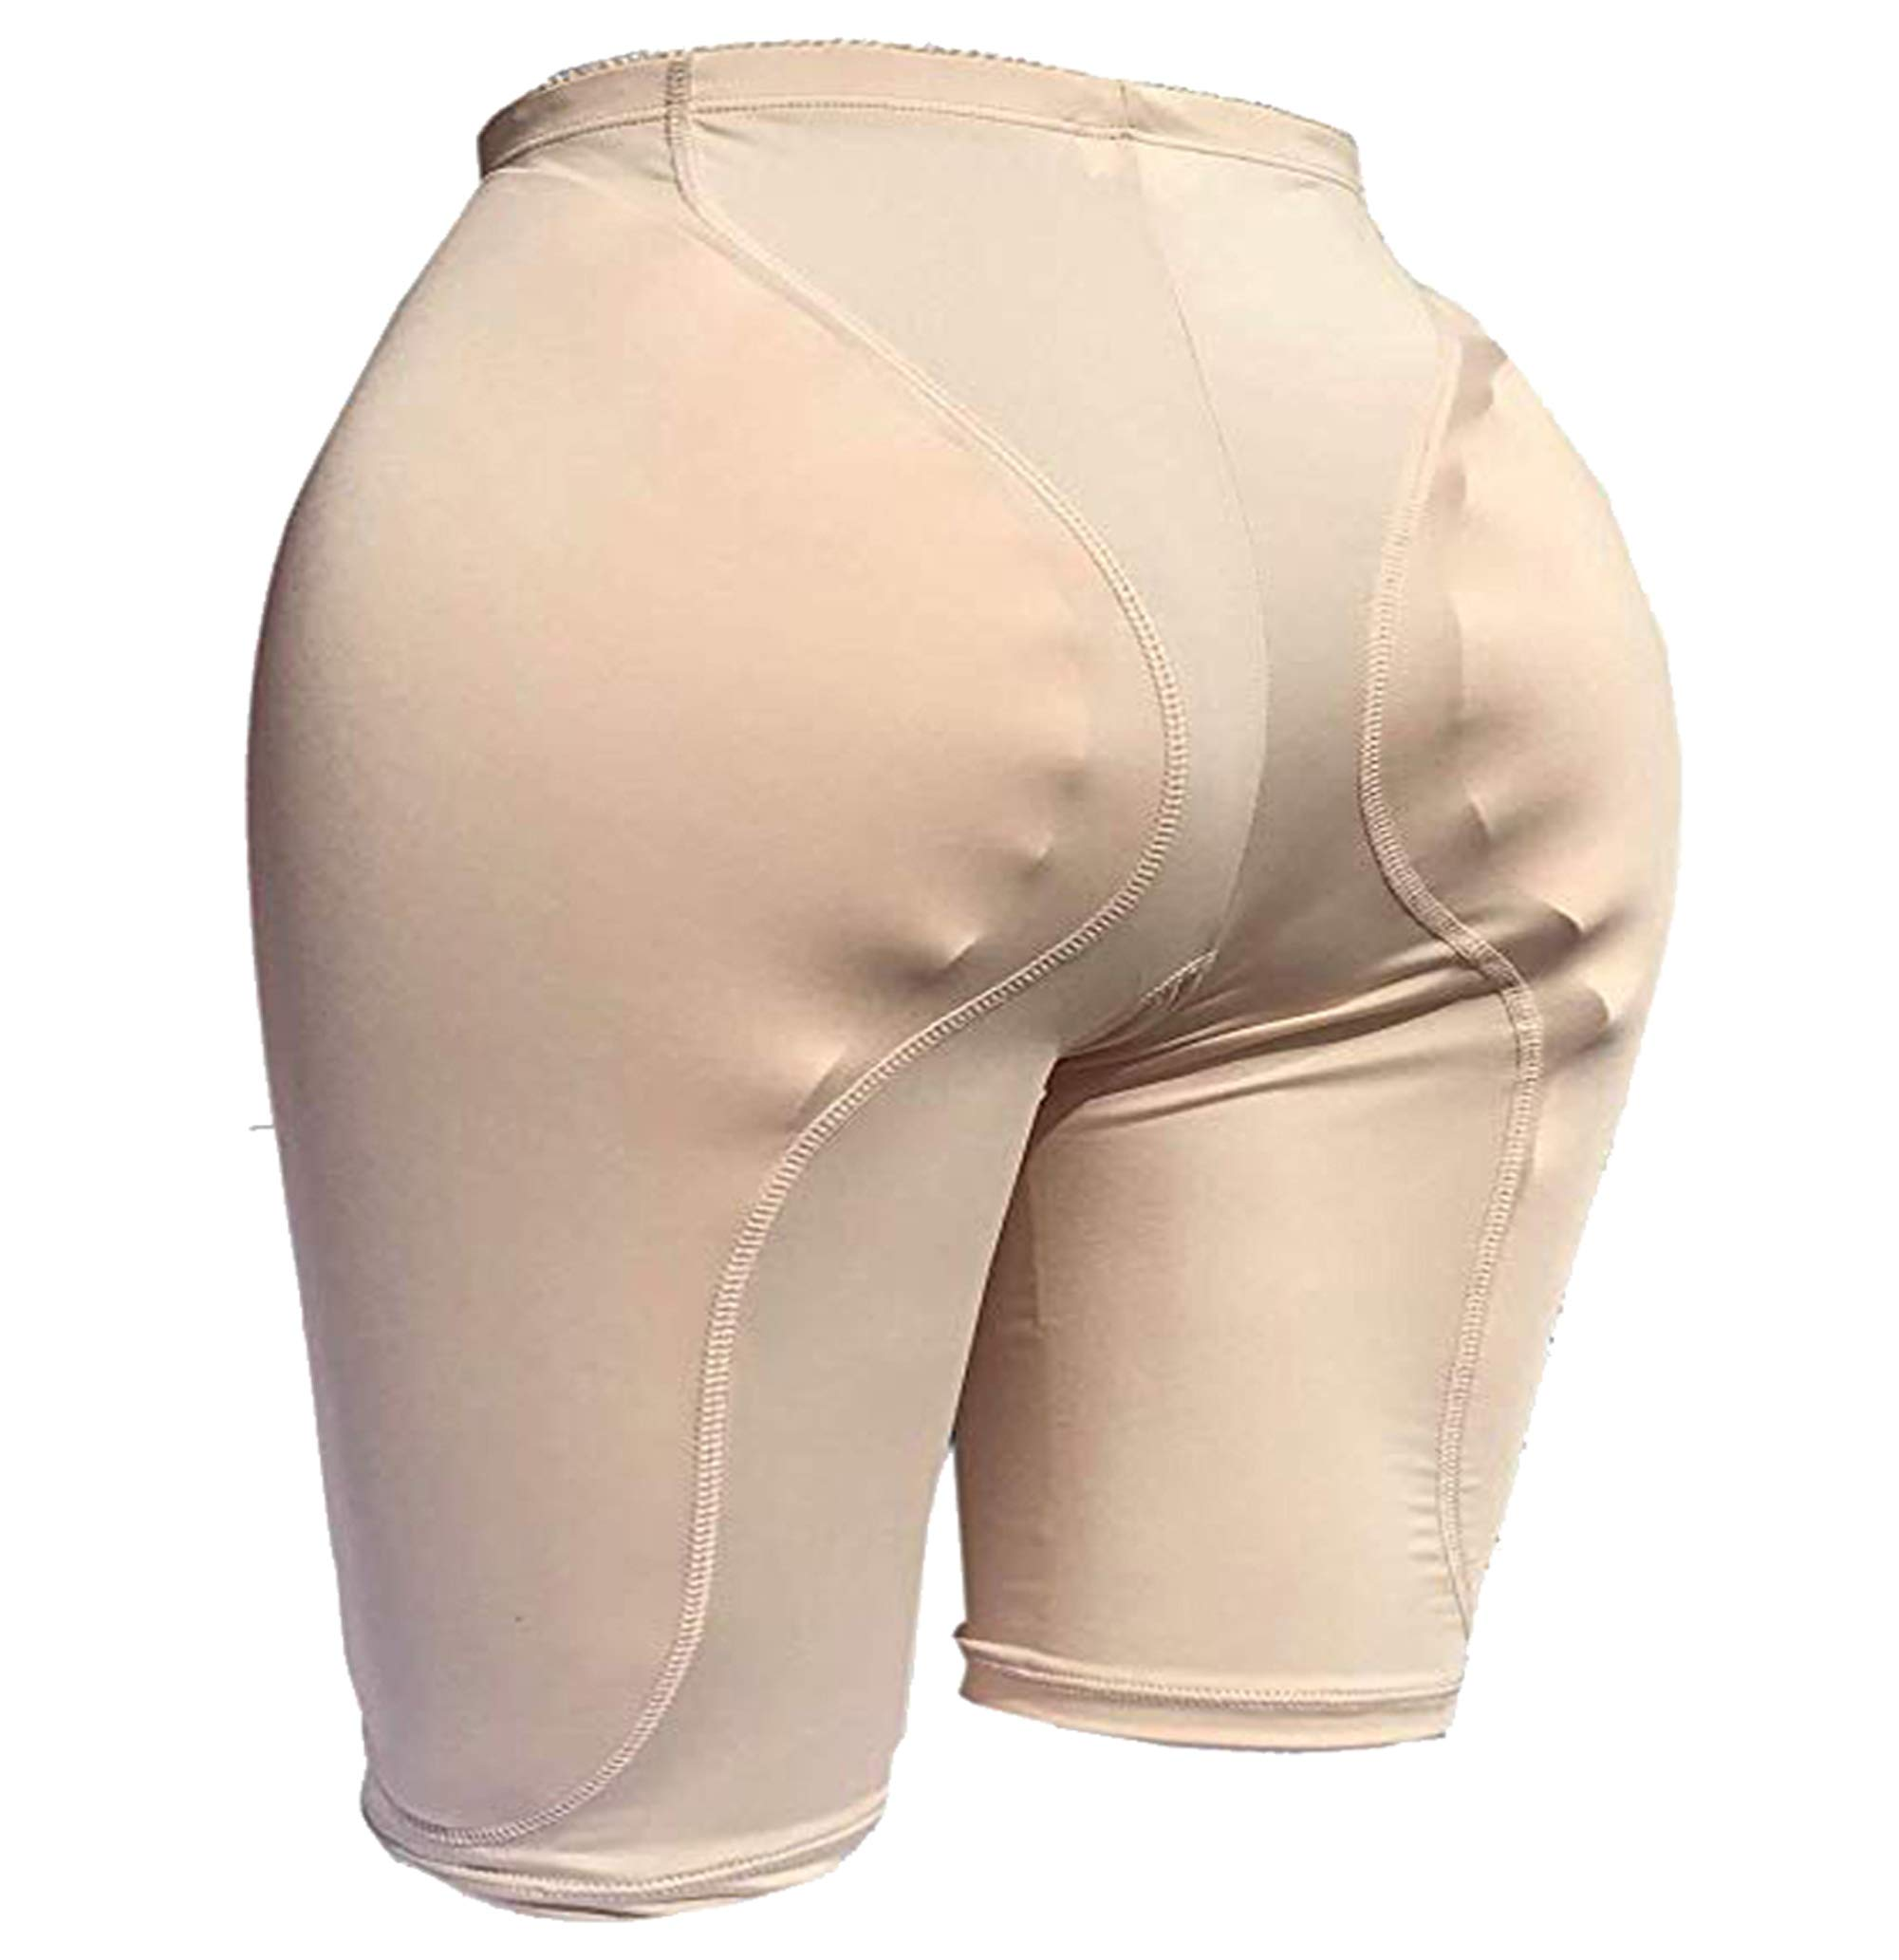 Ajusen 2PS Sponge Padded Butt Lifter Breathable Hip Enhancer Reusable for Women Men Crossdresser